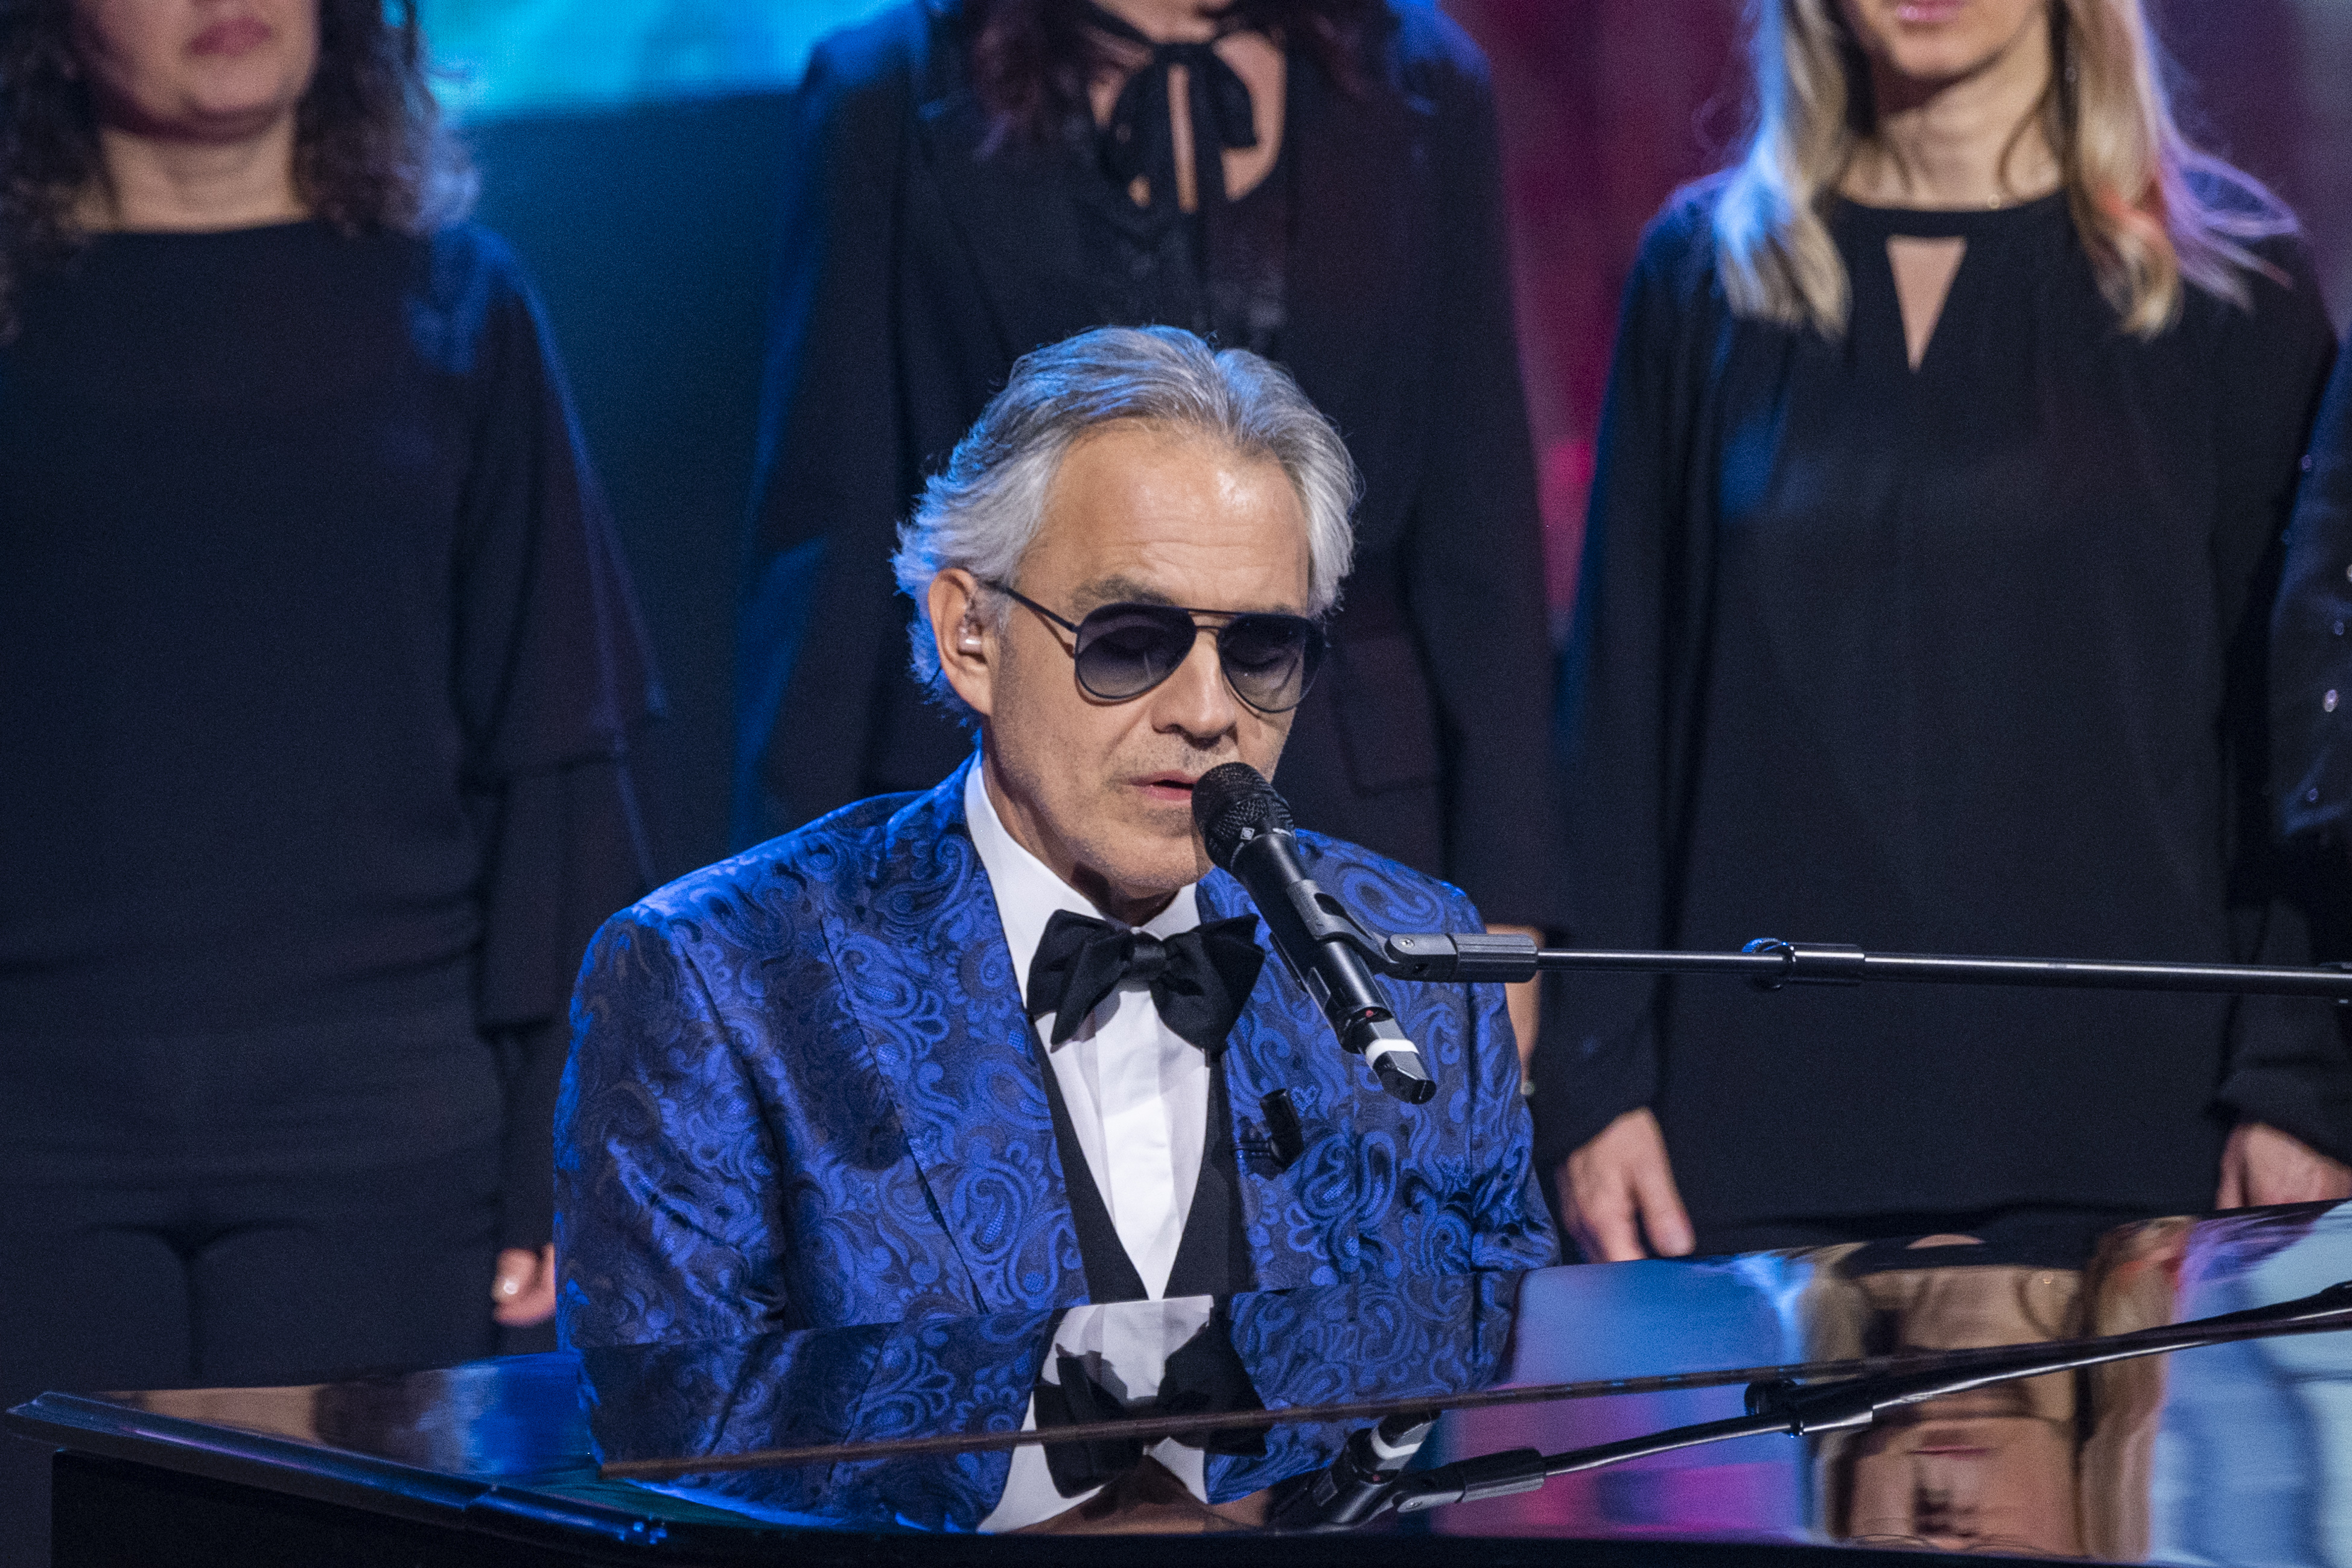 Andrea Bocelli Will Sing in an Empty Cathedral on Easter to Uplift People of All Faiths